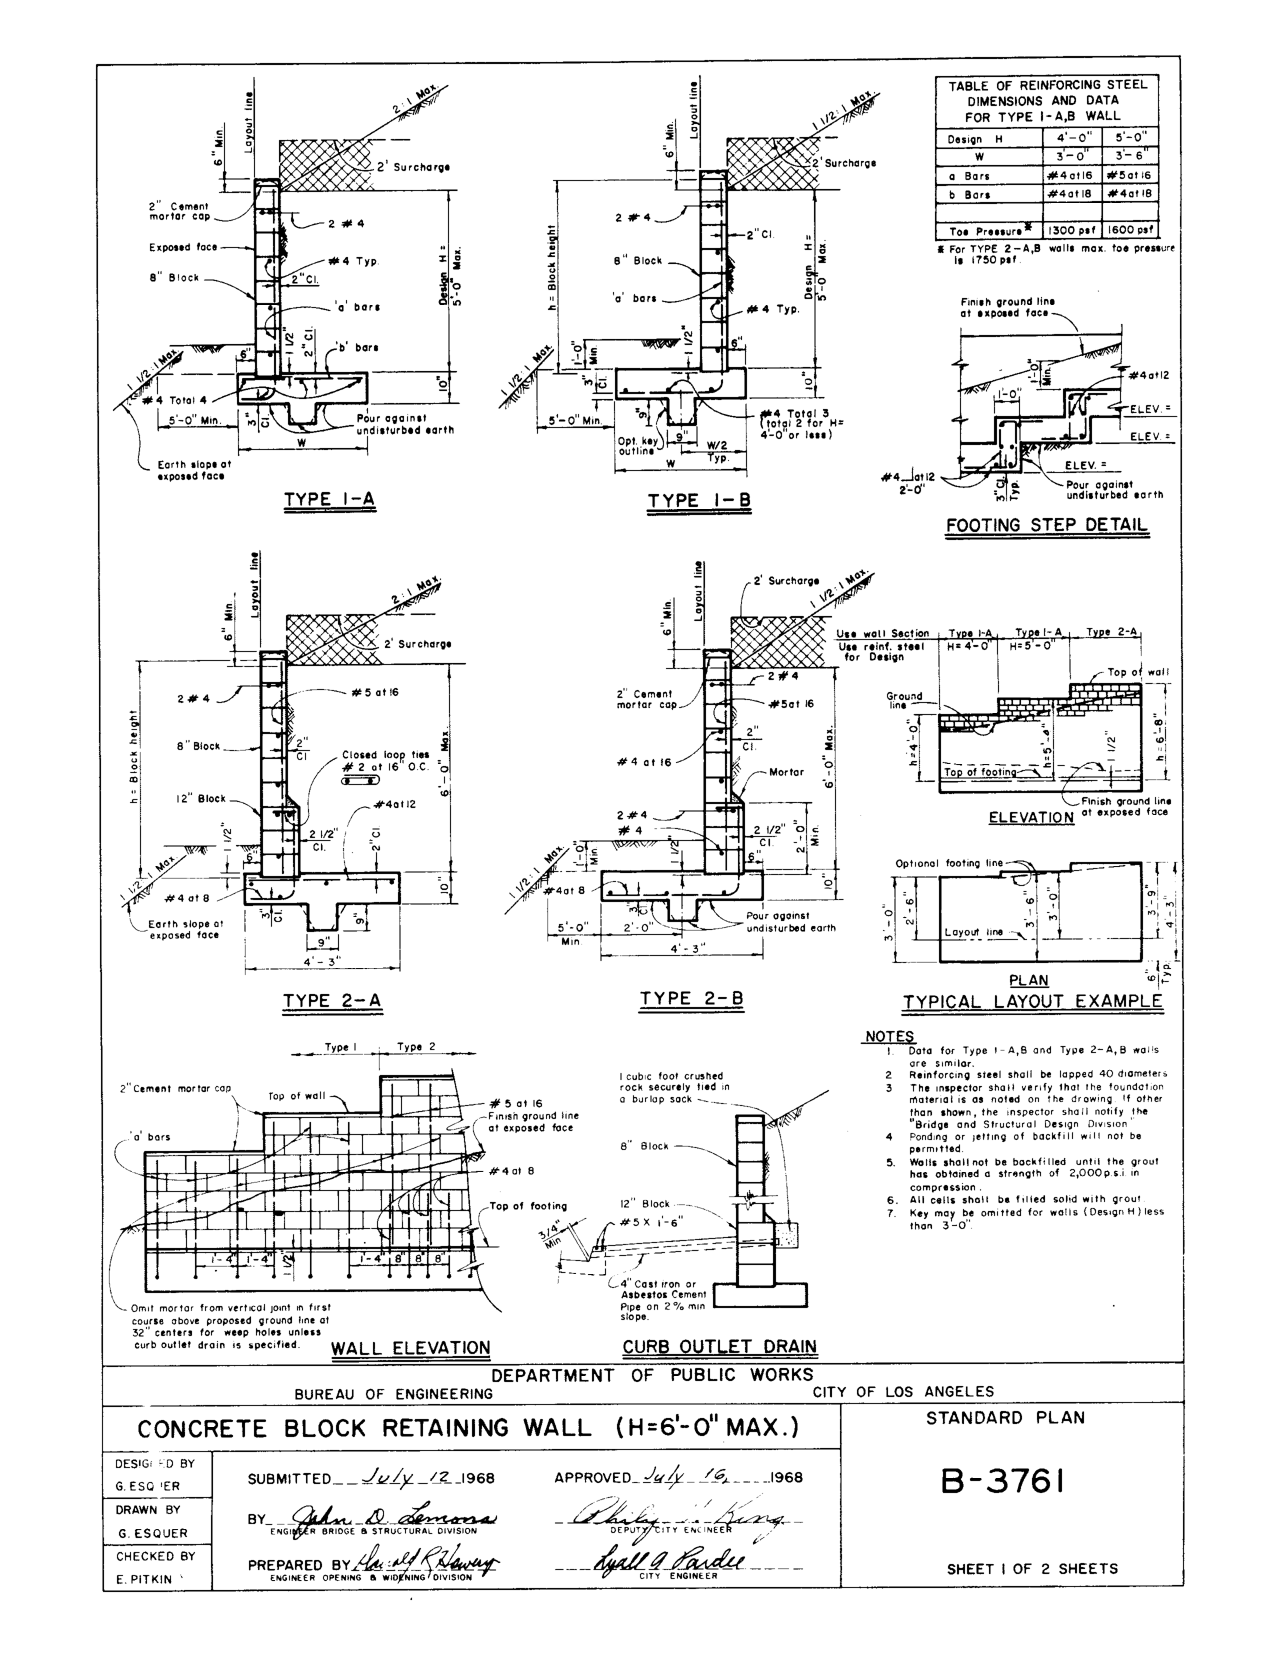 Concrete Block Retaining Wall Detail Detail Drawings